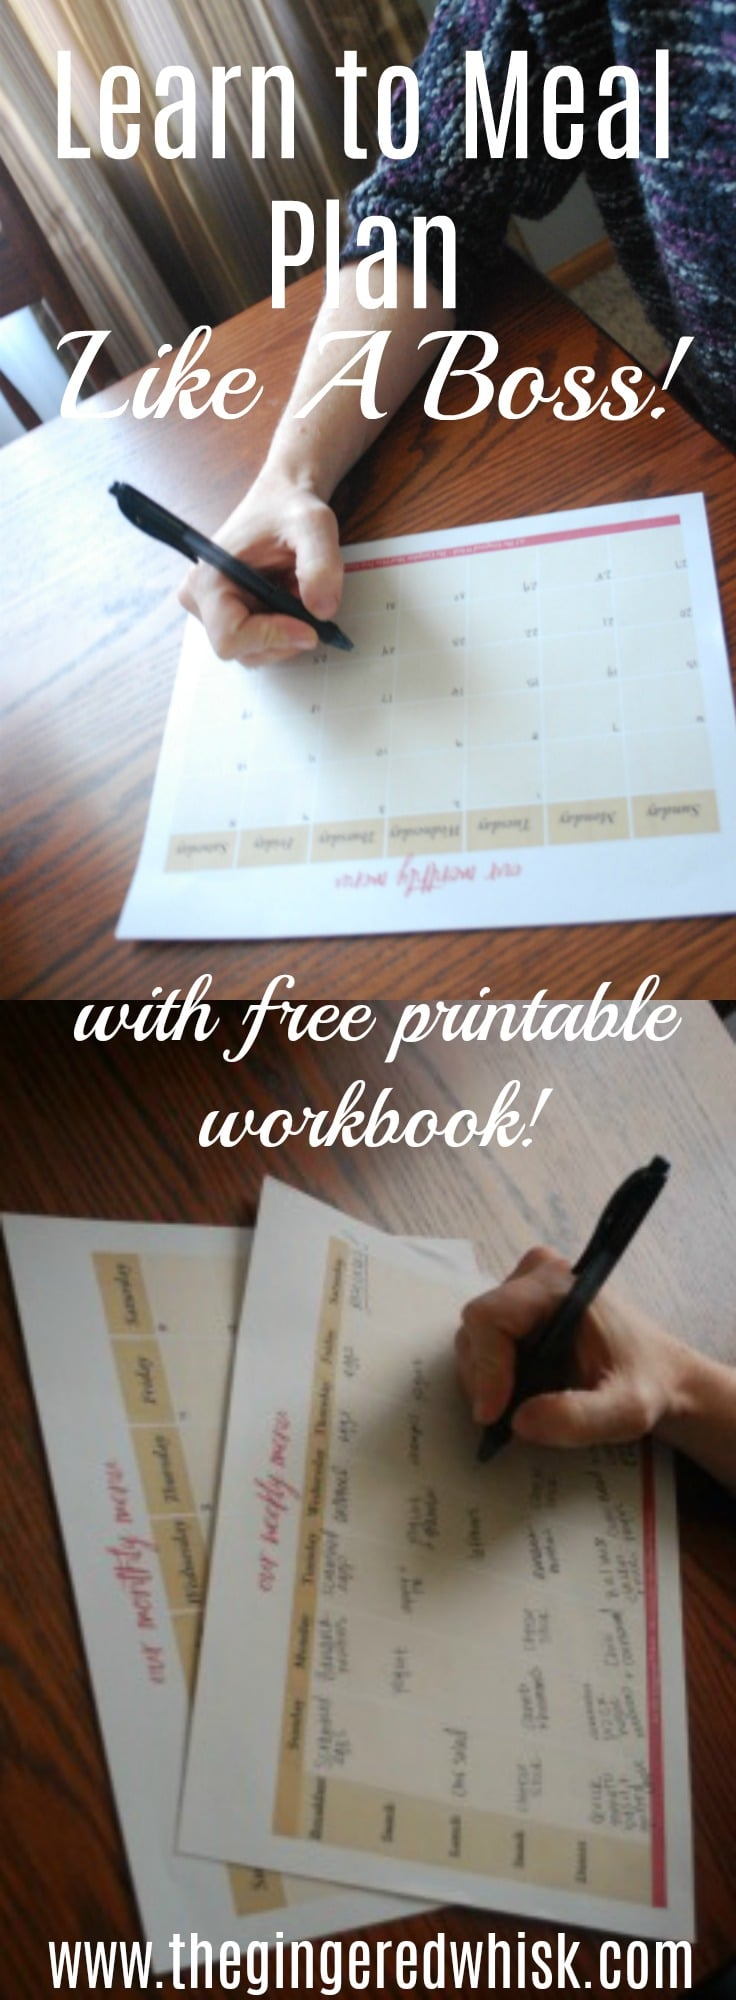 Learn how to make meal planning easy and stress free and fit your life style! Free Printable workbook included! How to Meal Plan, Learn to Meal Plan Like A Boss, Meal Planning 101